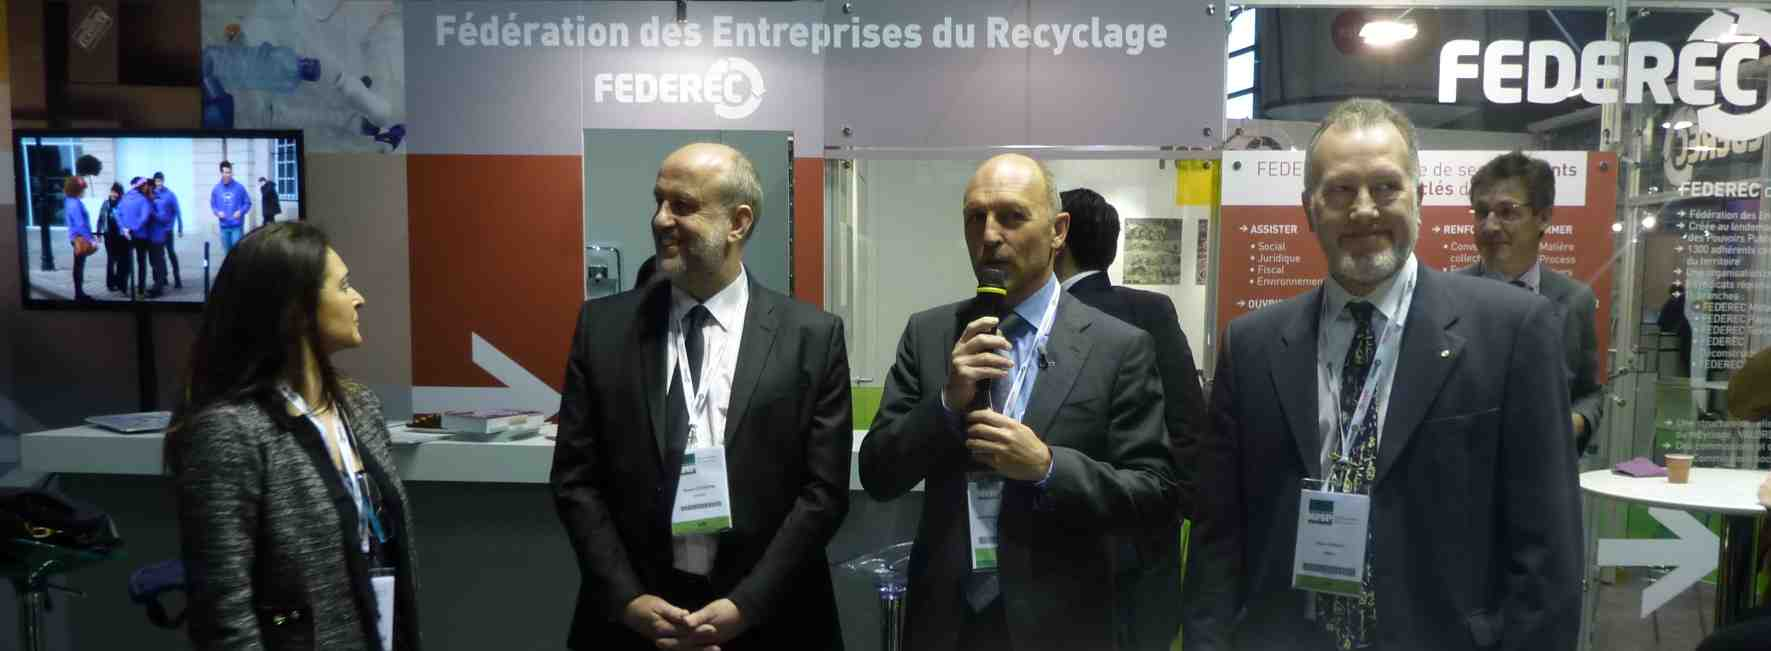 FORUM_NMP_LILLE_2013_02